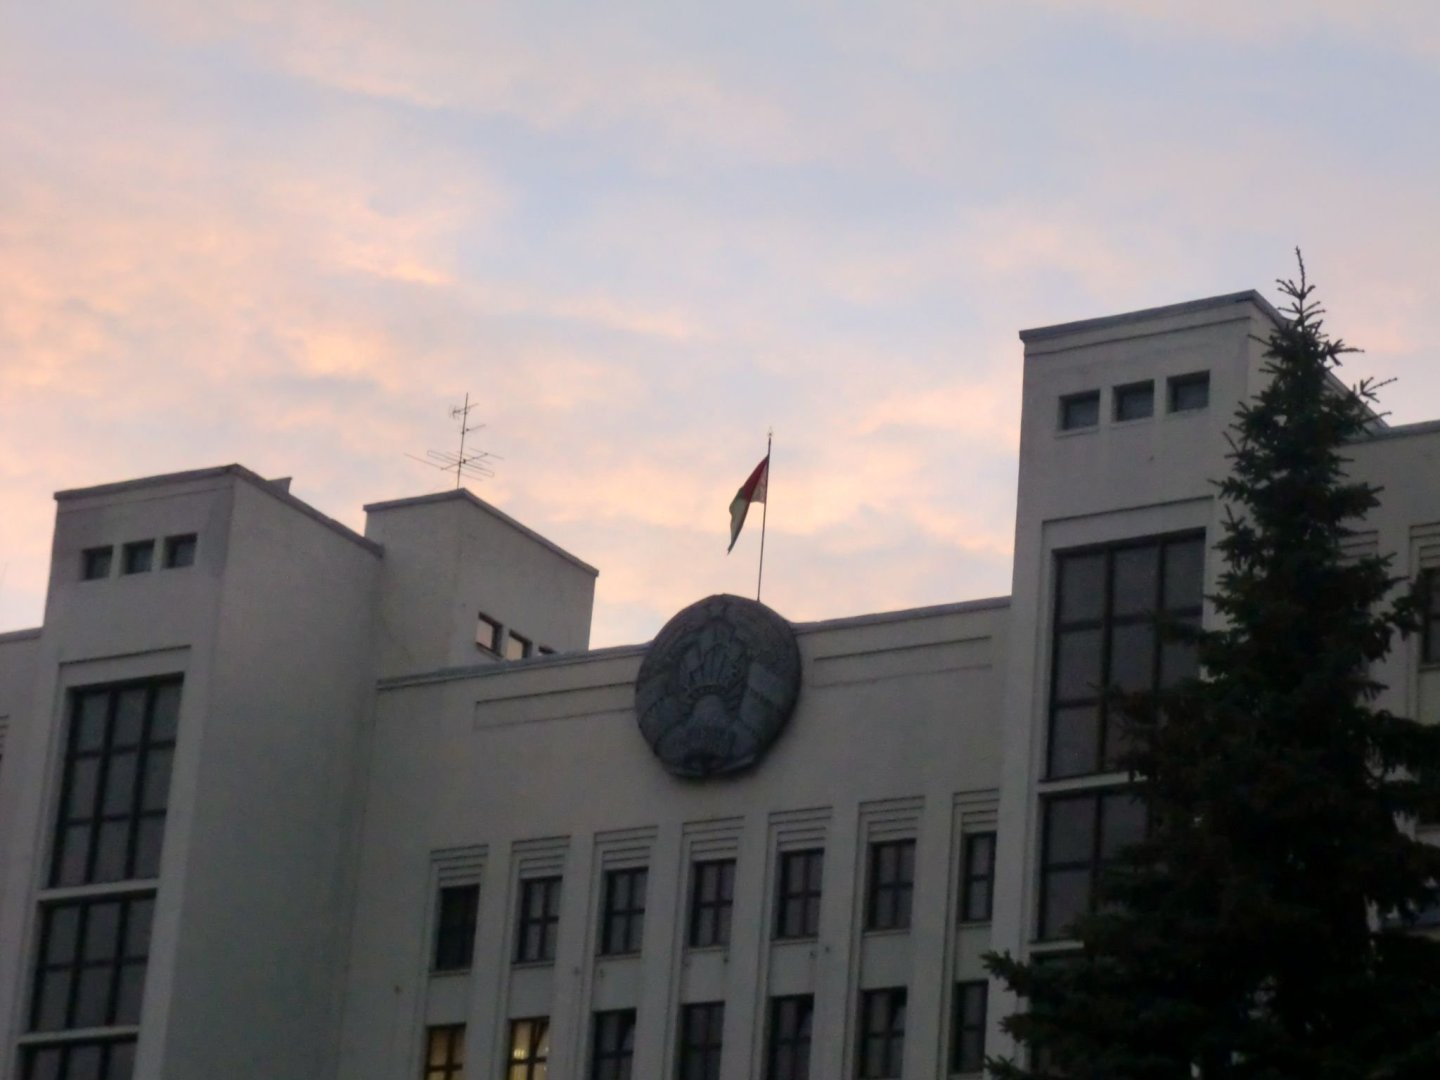 Minsk, 1 amazing city you have to see